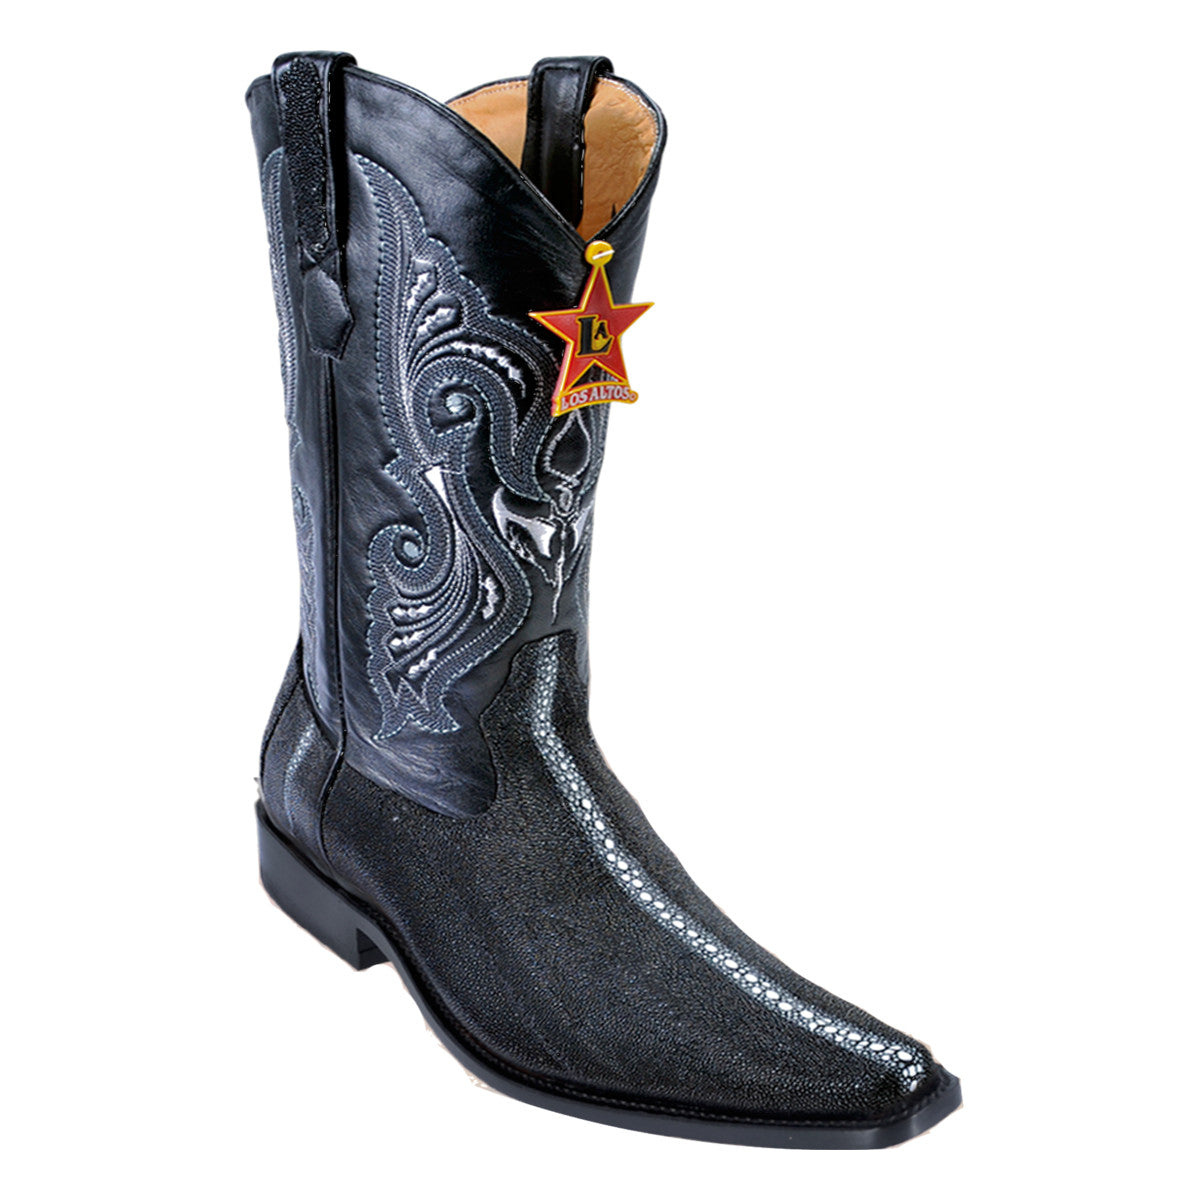 Los Altos Boots Narrow Square Toe Stingray Rowstone